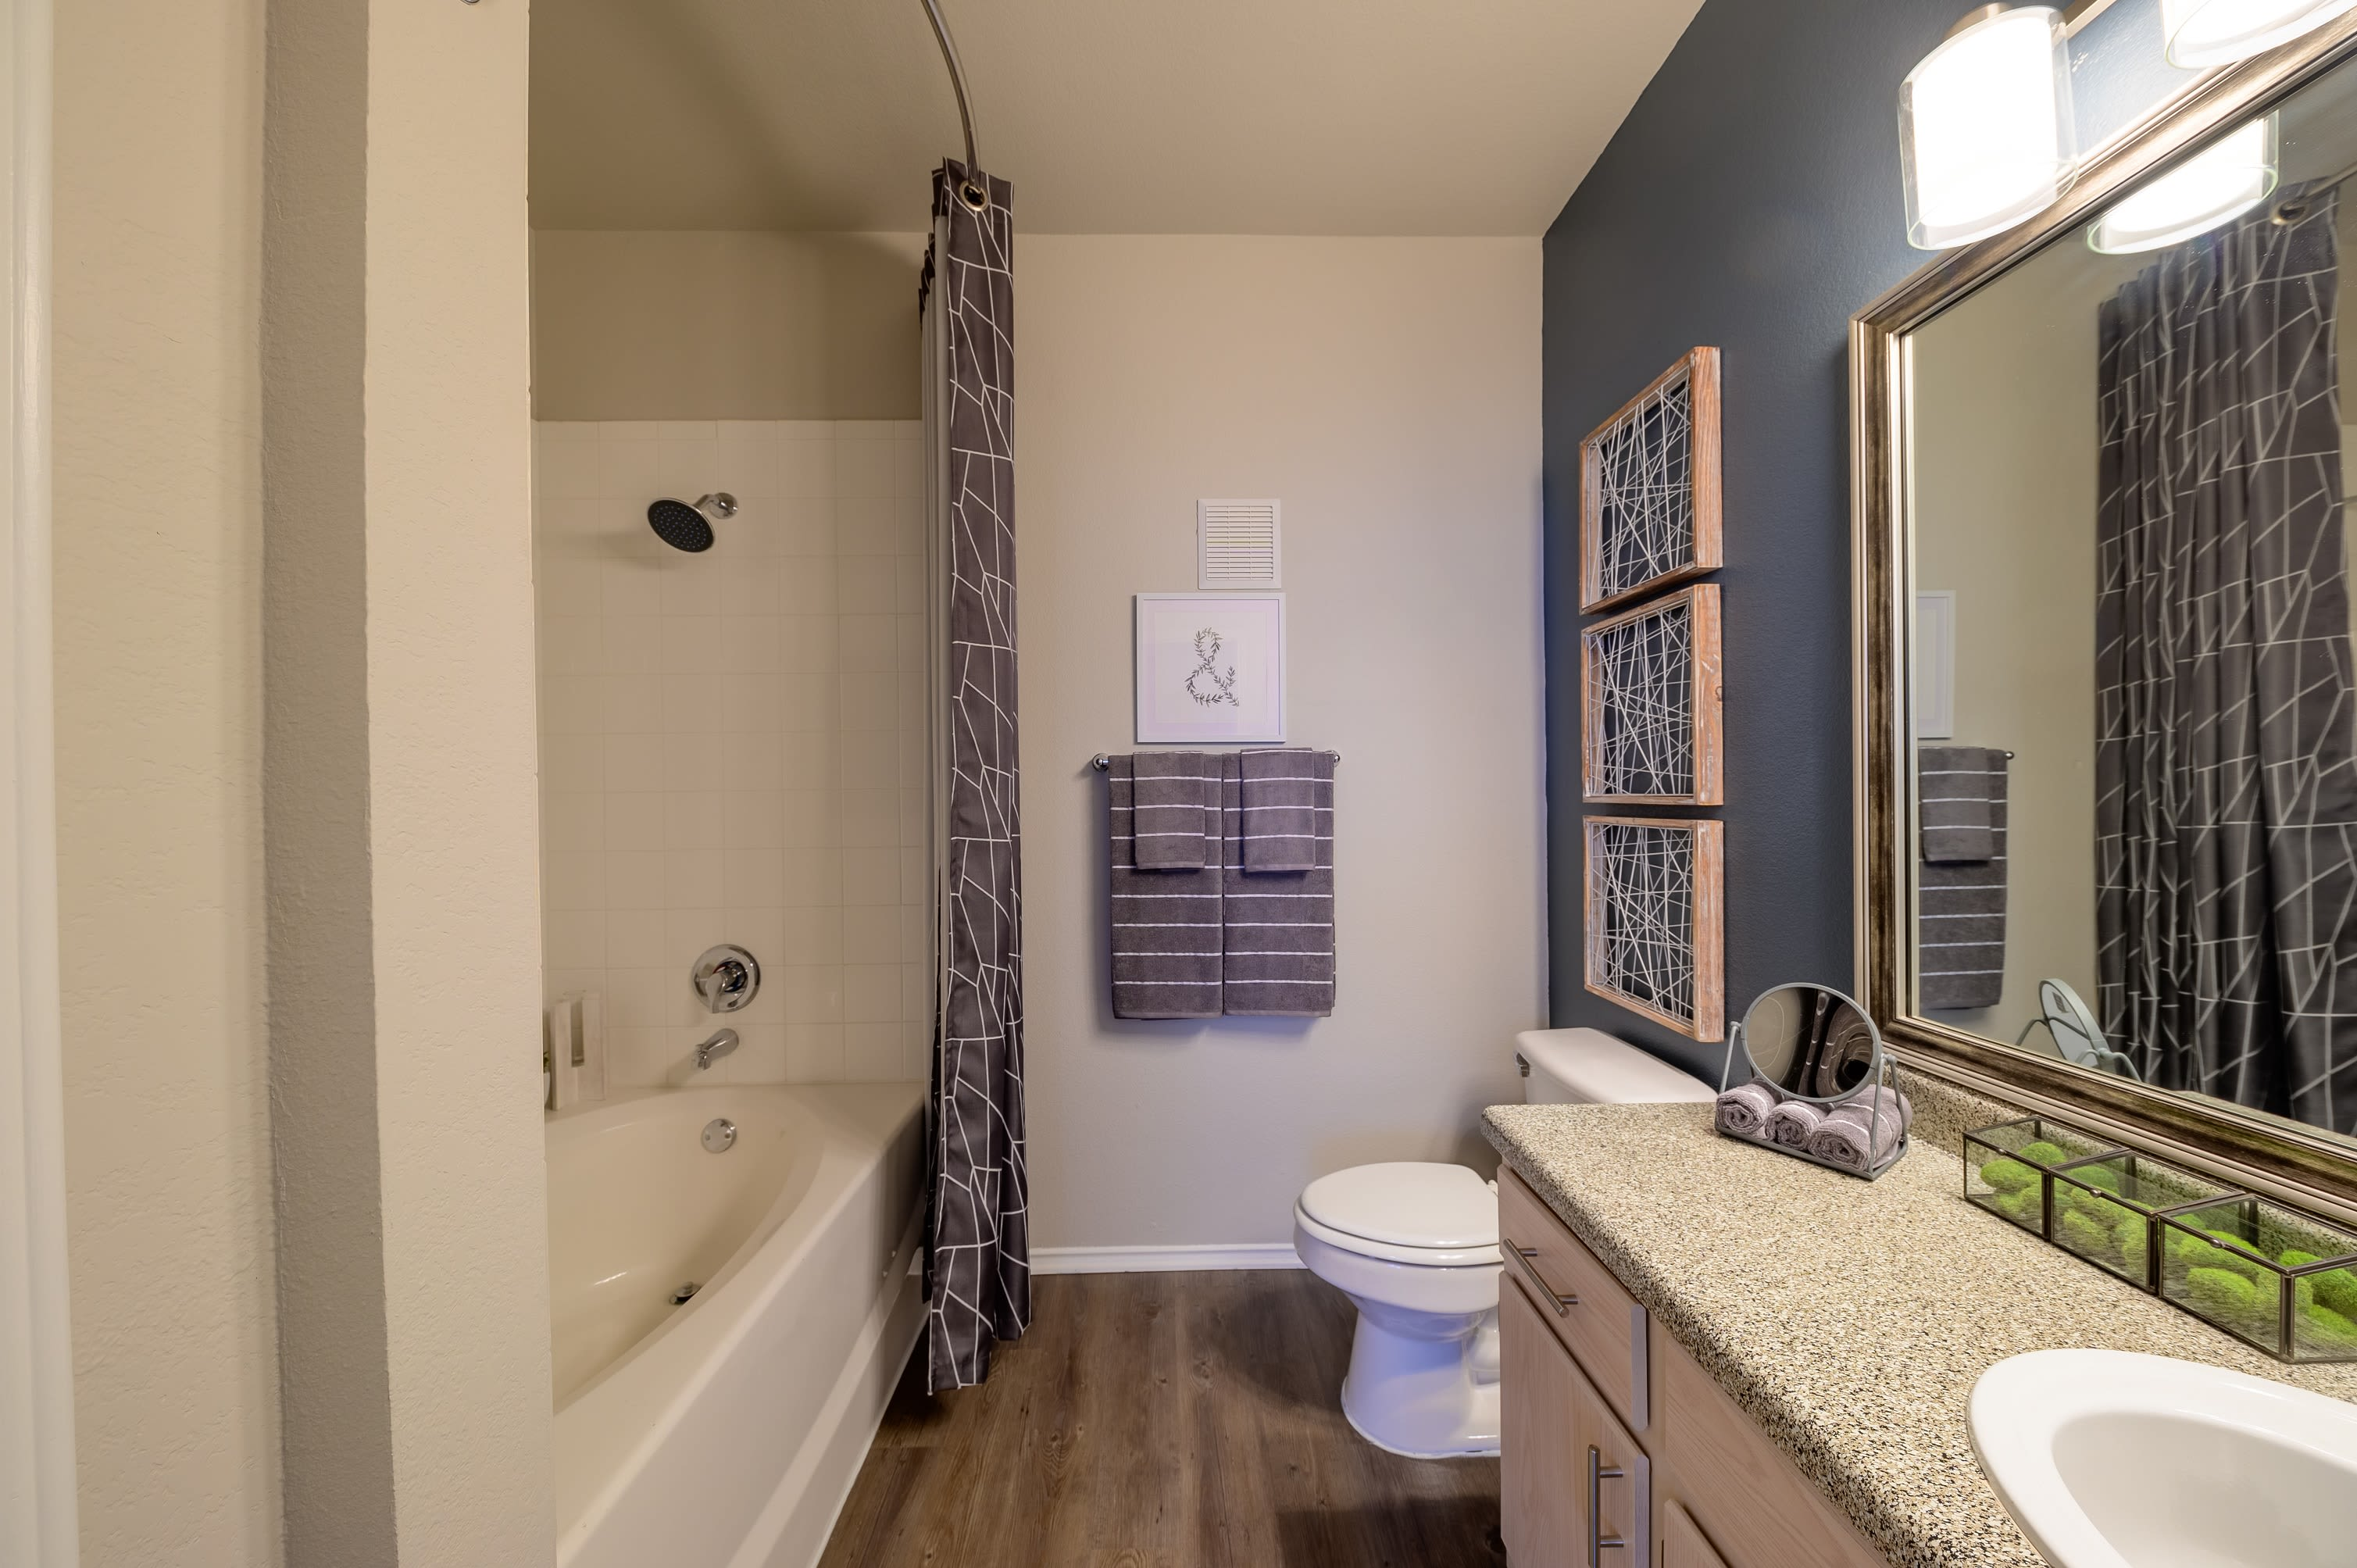 23Hundred at Ridgeview offers a luxury bedroom in Plano, Texas